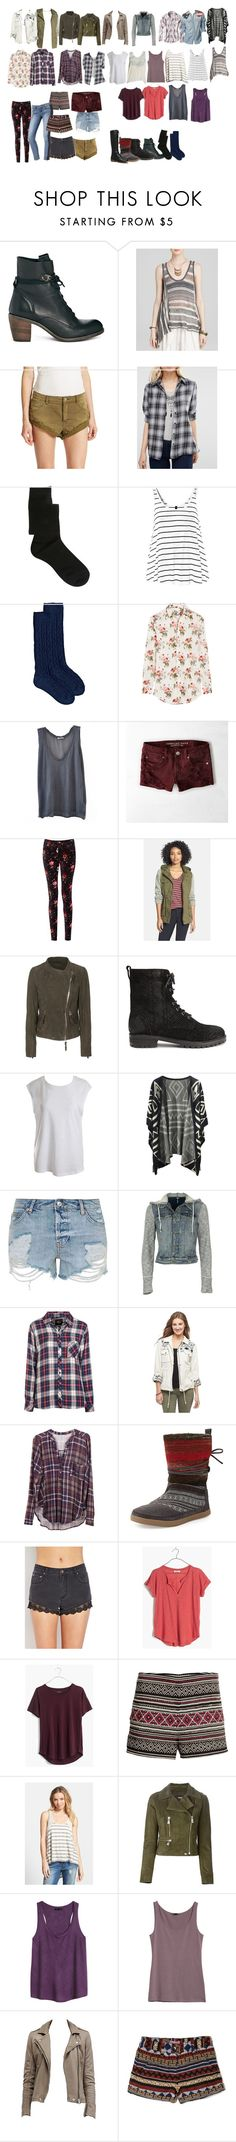 """""""Malia Tate season 5a essentials - tw / teen wolf"""" by shadyannon ❤ liked on Polyvore featuring Steve Madden, Free People, ONLY, ASOS, Yves Saint Laurent, American Vintage, American Eagle Outfitters, French Connection, Olive + Oak and DNA"""